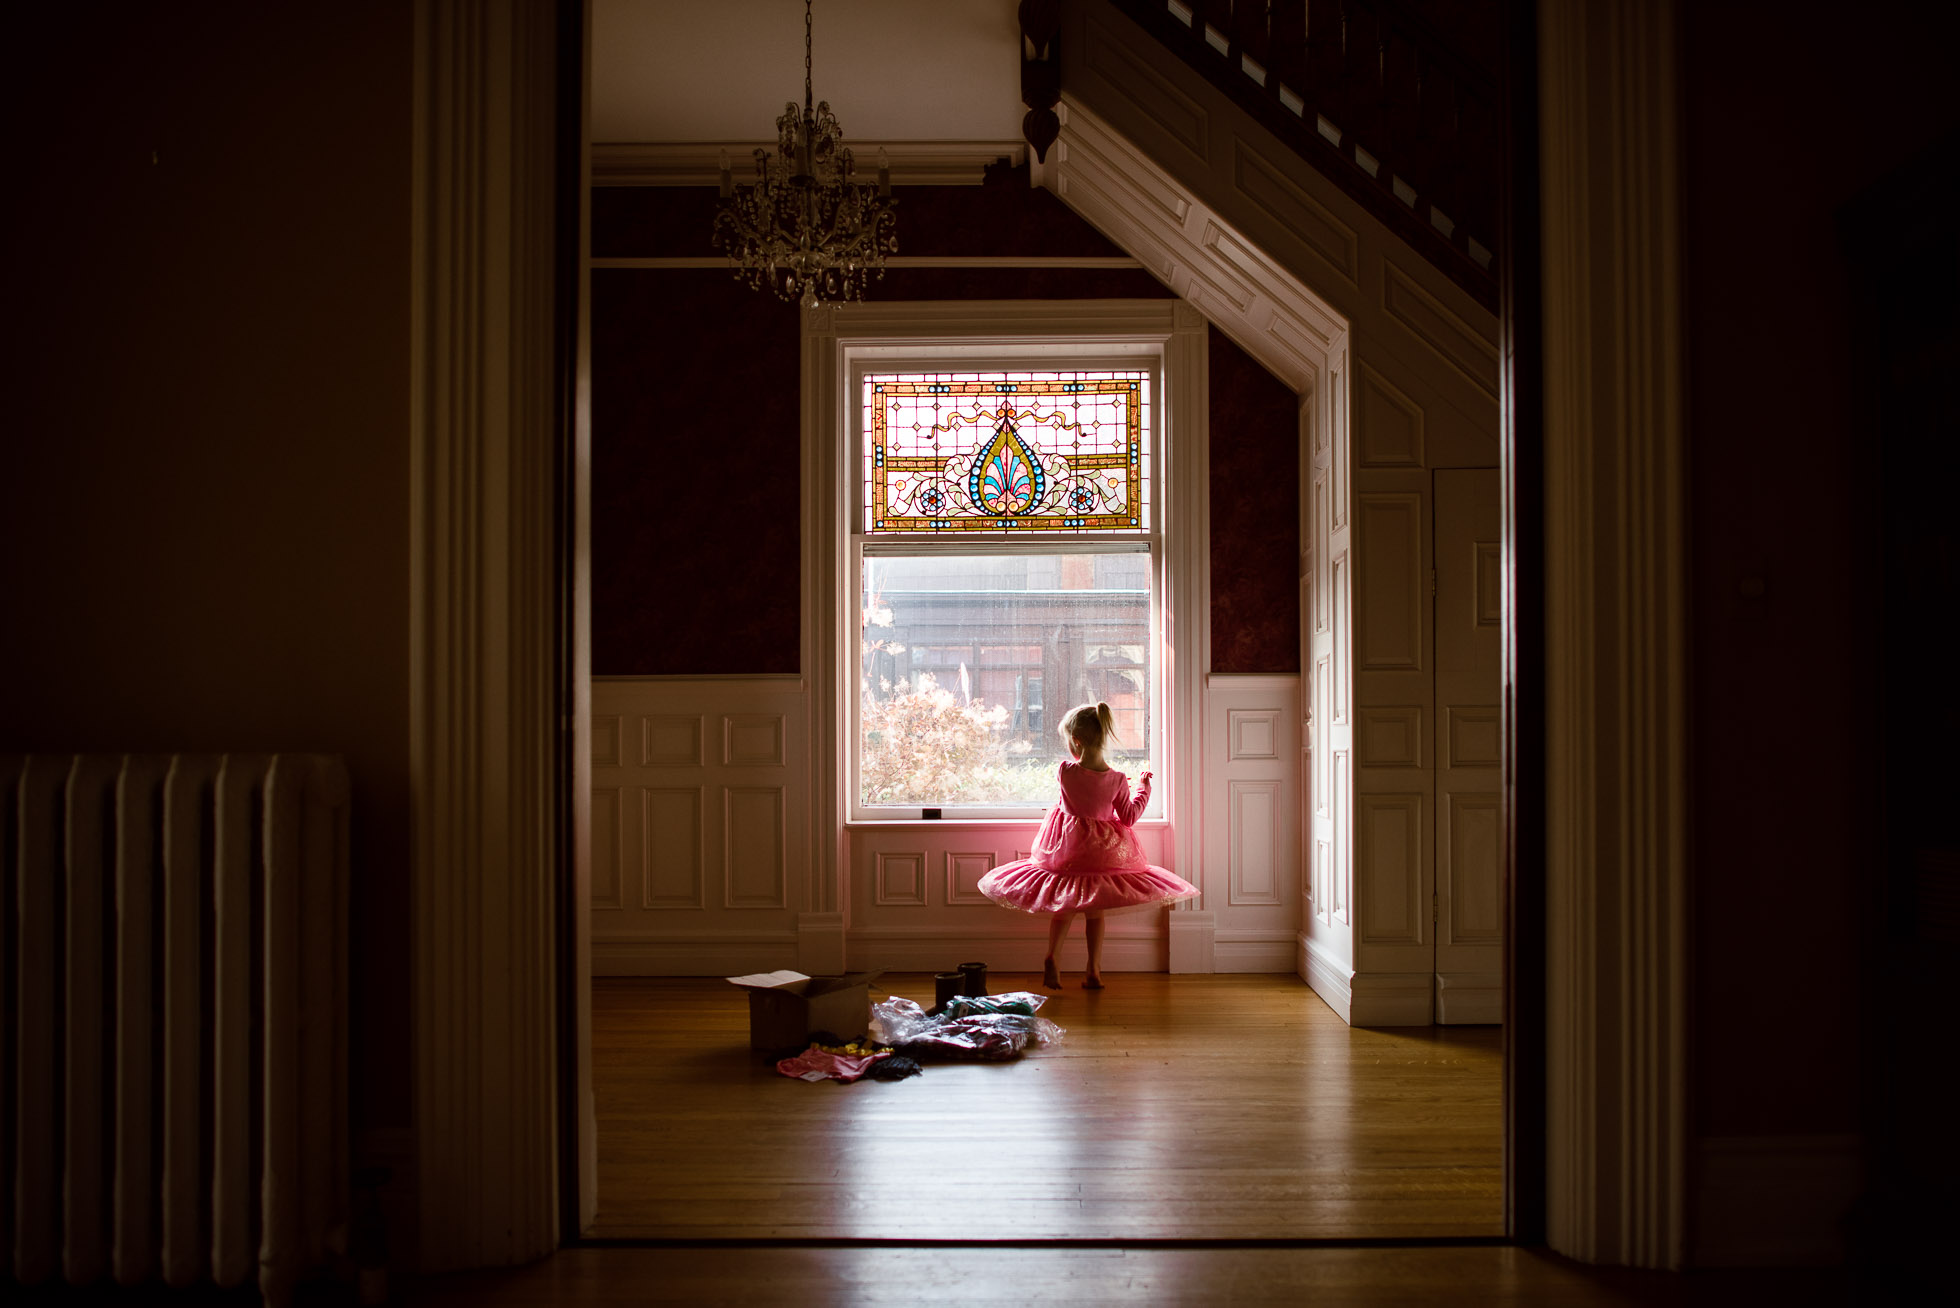 everyday-documentary-photo-of-little-girl-prentending-to-be-ballerina-twirling-in-pink-dress-while-trying-on-new-clothes-in-beautiful-window-light-by-sarah-wilkerson-3338